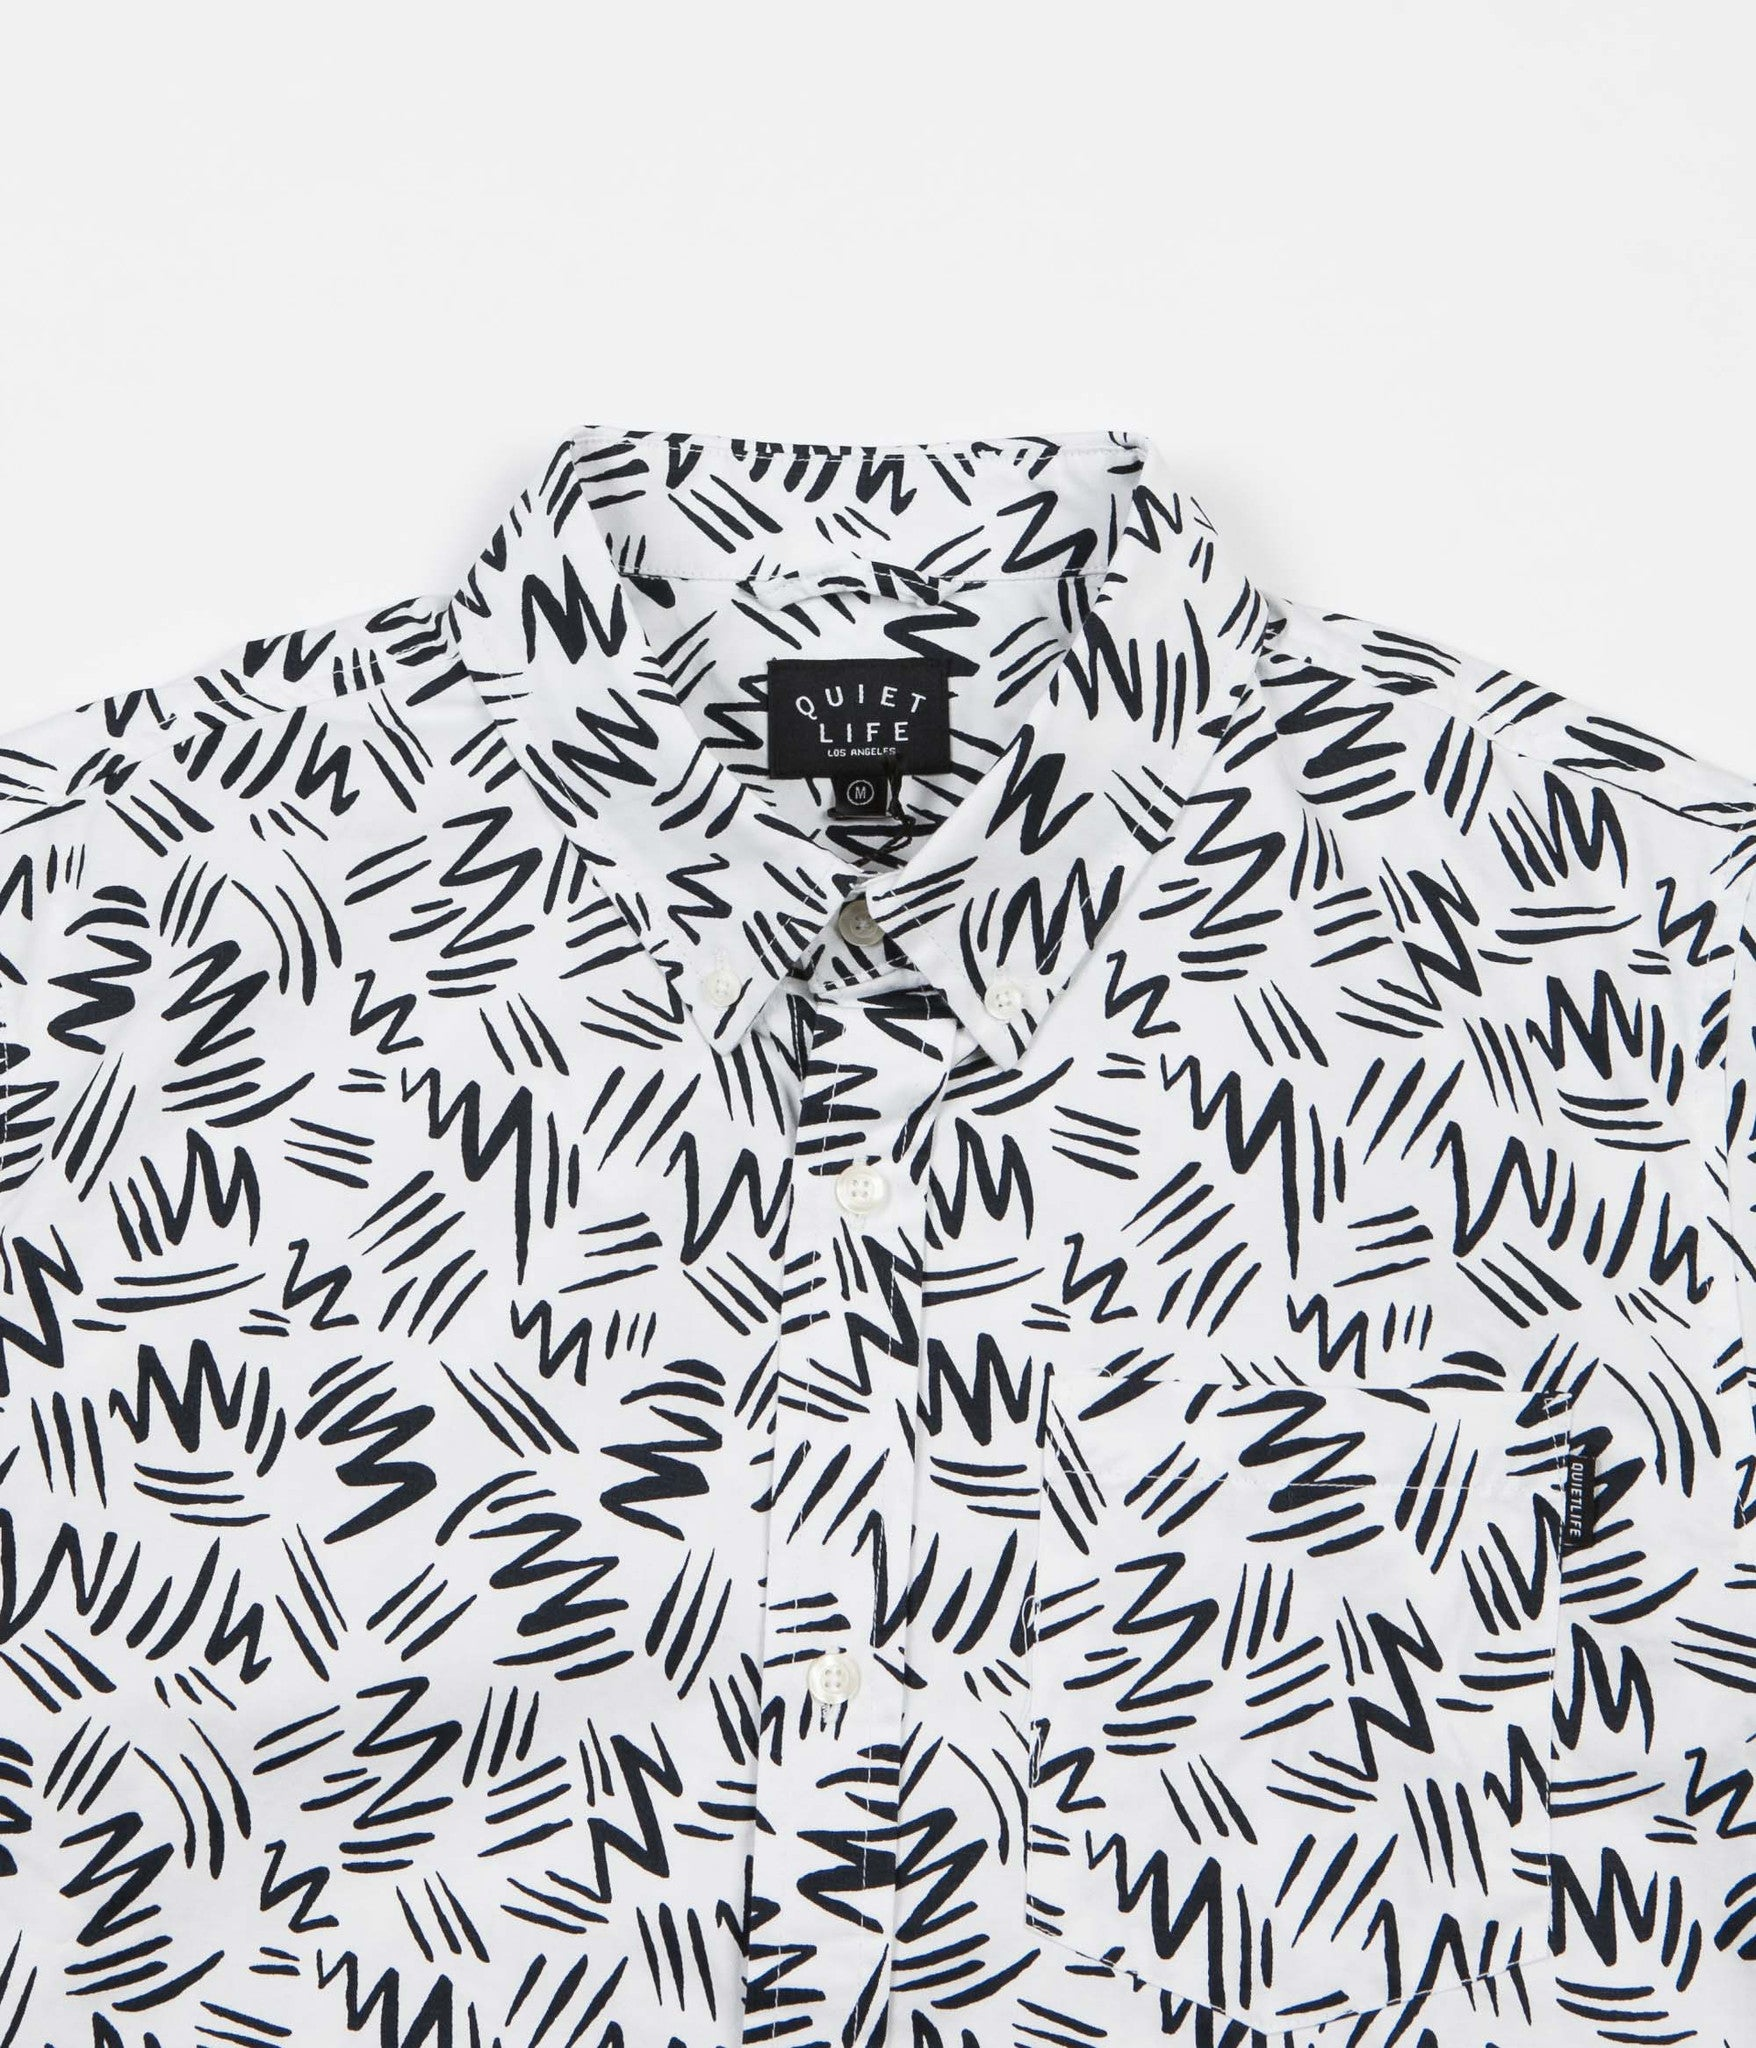 The Quiet Life Ziggity Button Down Shirt - Black / White